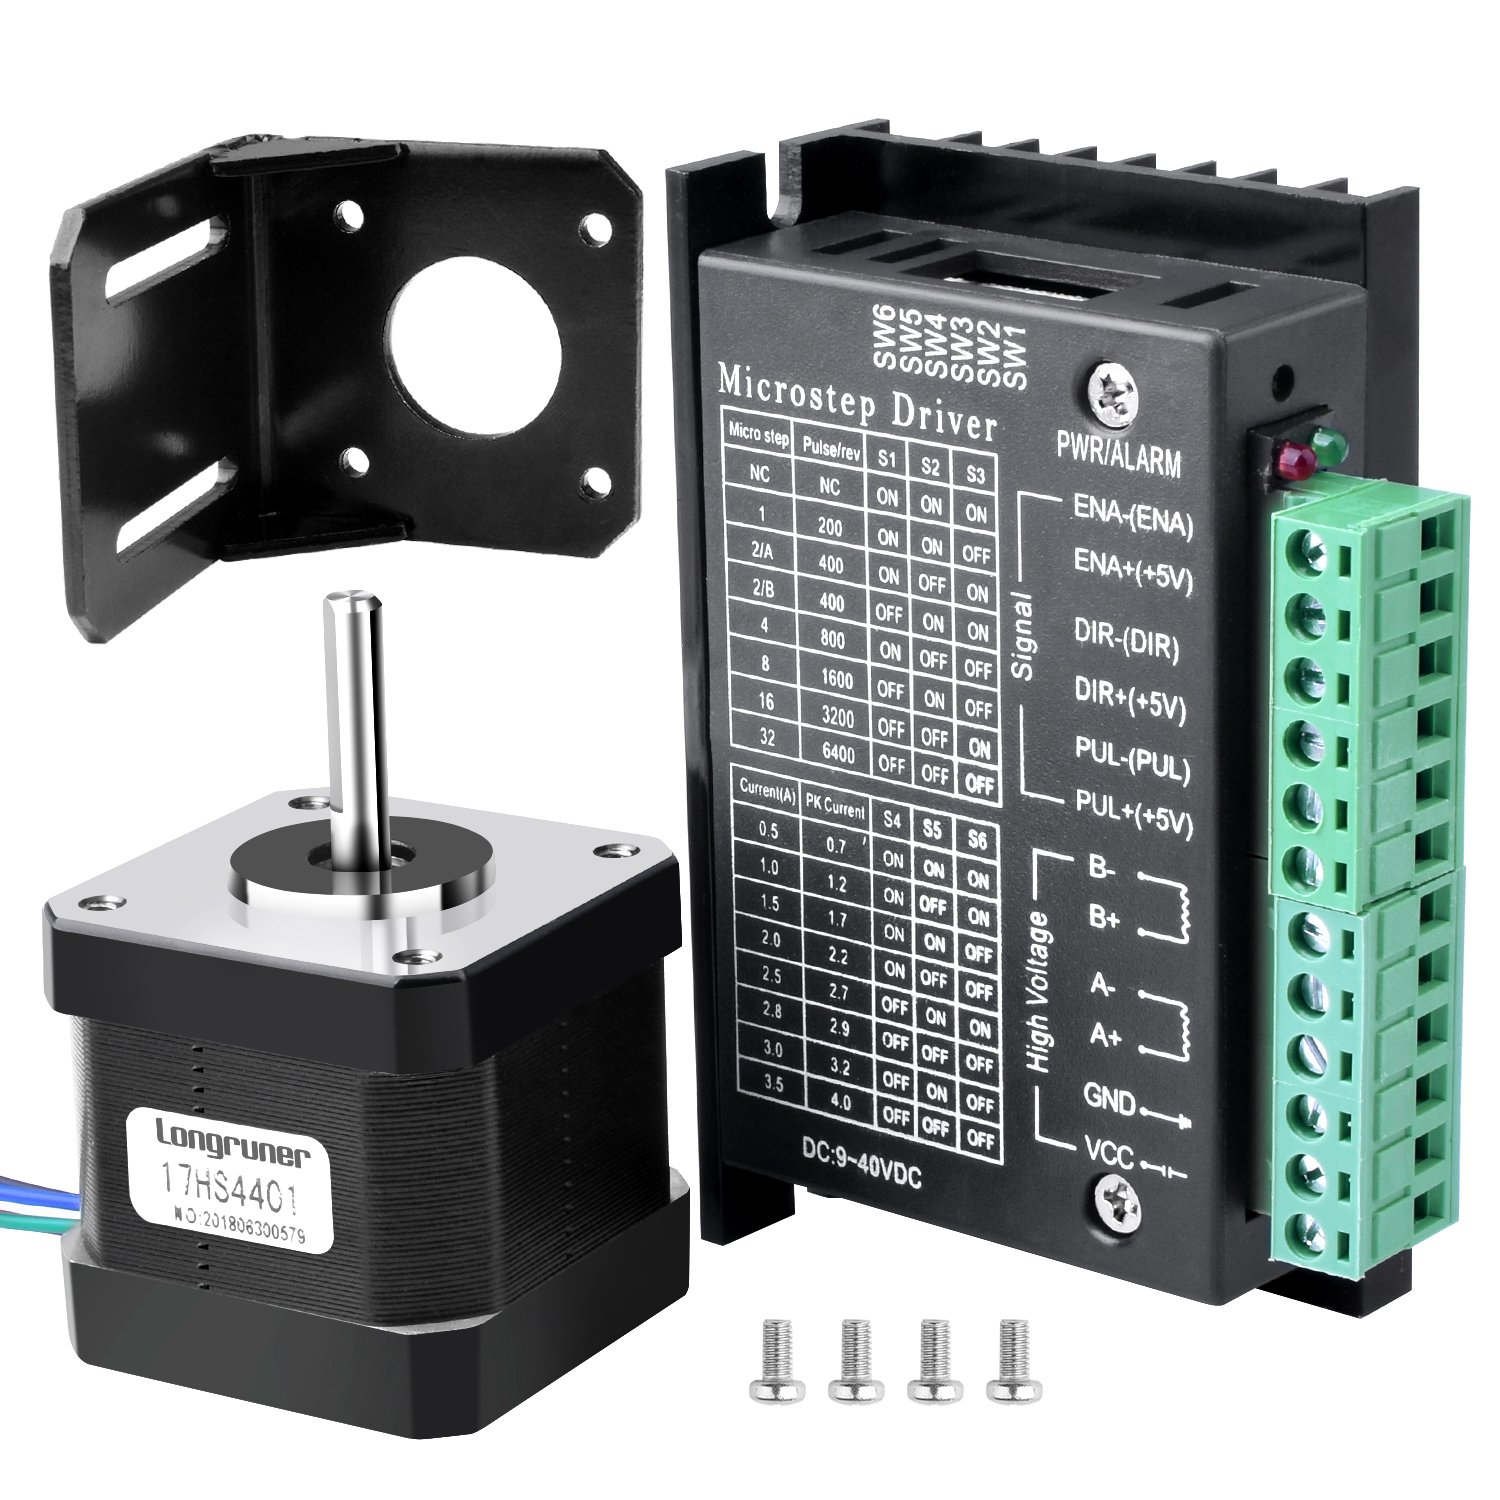 Longruner Nema 17 Stepper Motor + Stepper Motor Driver 3D Printer/CNC, Bipolar 1.7A/24V 42X40mm Body 4-Lead Stepper Motor & 32 Segments 4A 40V 57/86 Stepper Motor Driver LD09 (Nema 17)